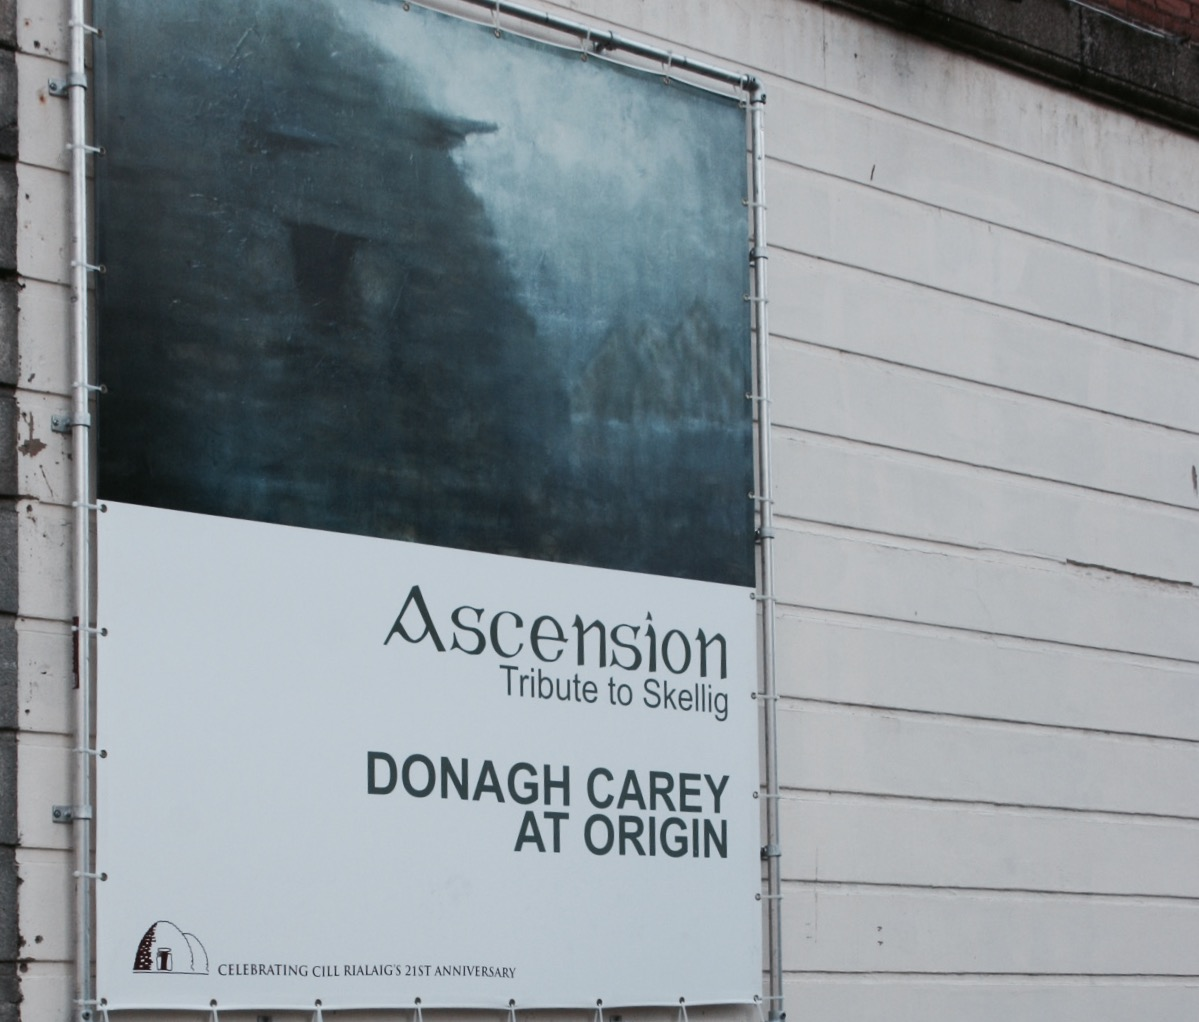 'Ascension - Tribute to Skellig' solo show at Origin Gallery, Hardcourt Street, Dublin in 2012.